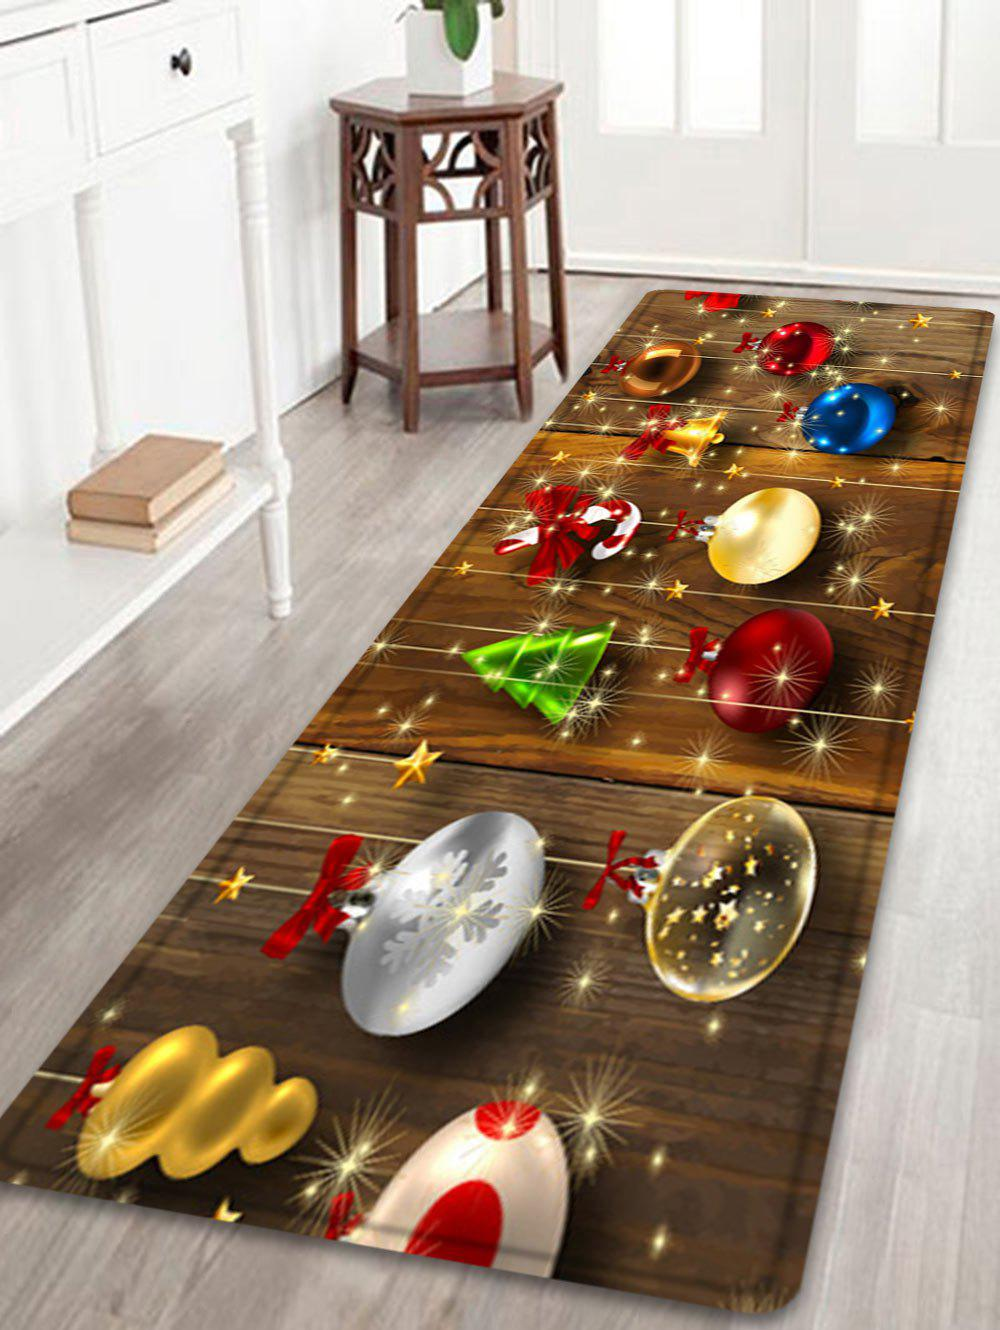 Christmas Baubles Wood Pattern Anti-skid Water Absorption Area RugHOME<br><br>Size: W24 INCH * L71 INCH; Color: COLORMIX; Products Type: Bath rugs; Materials: Flannel; Pattern: Ball,Wood Grain; Style: Festival; Shape: Rectangle; Package Contents: 1 x Rug;